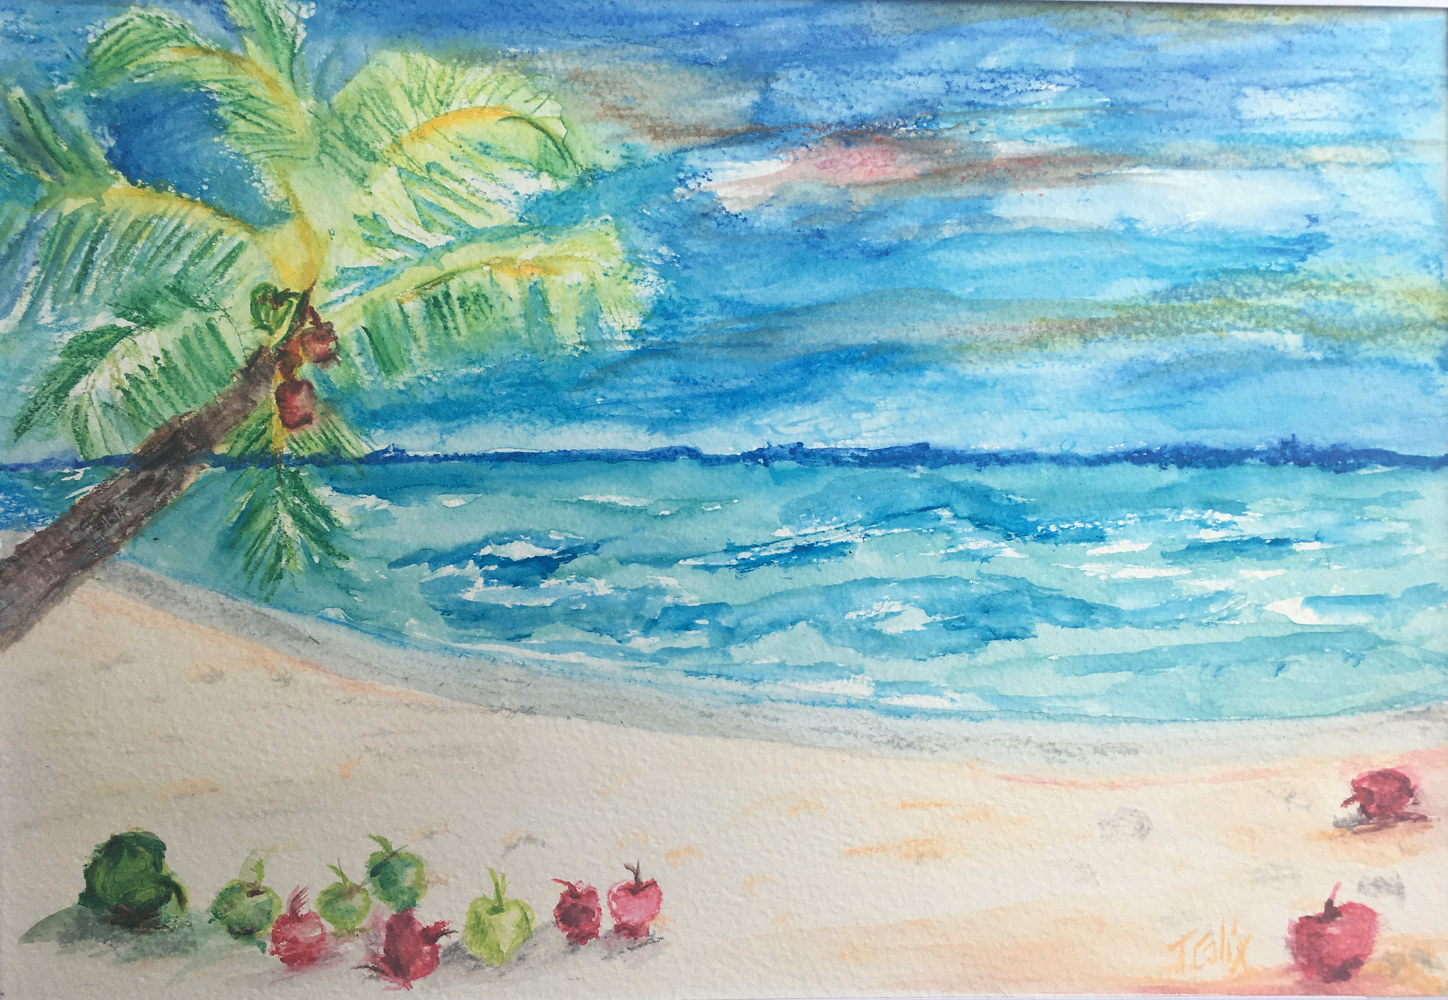 Watercolor Apple Beach by Jasmine Calix